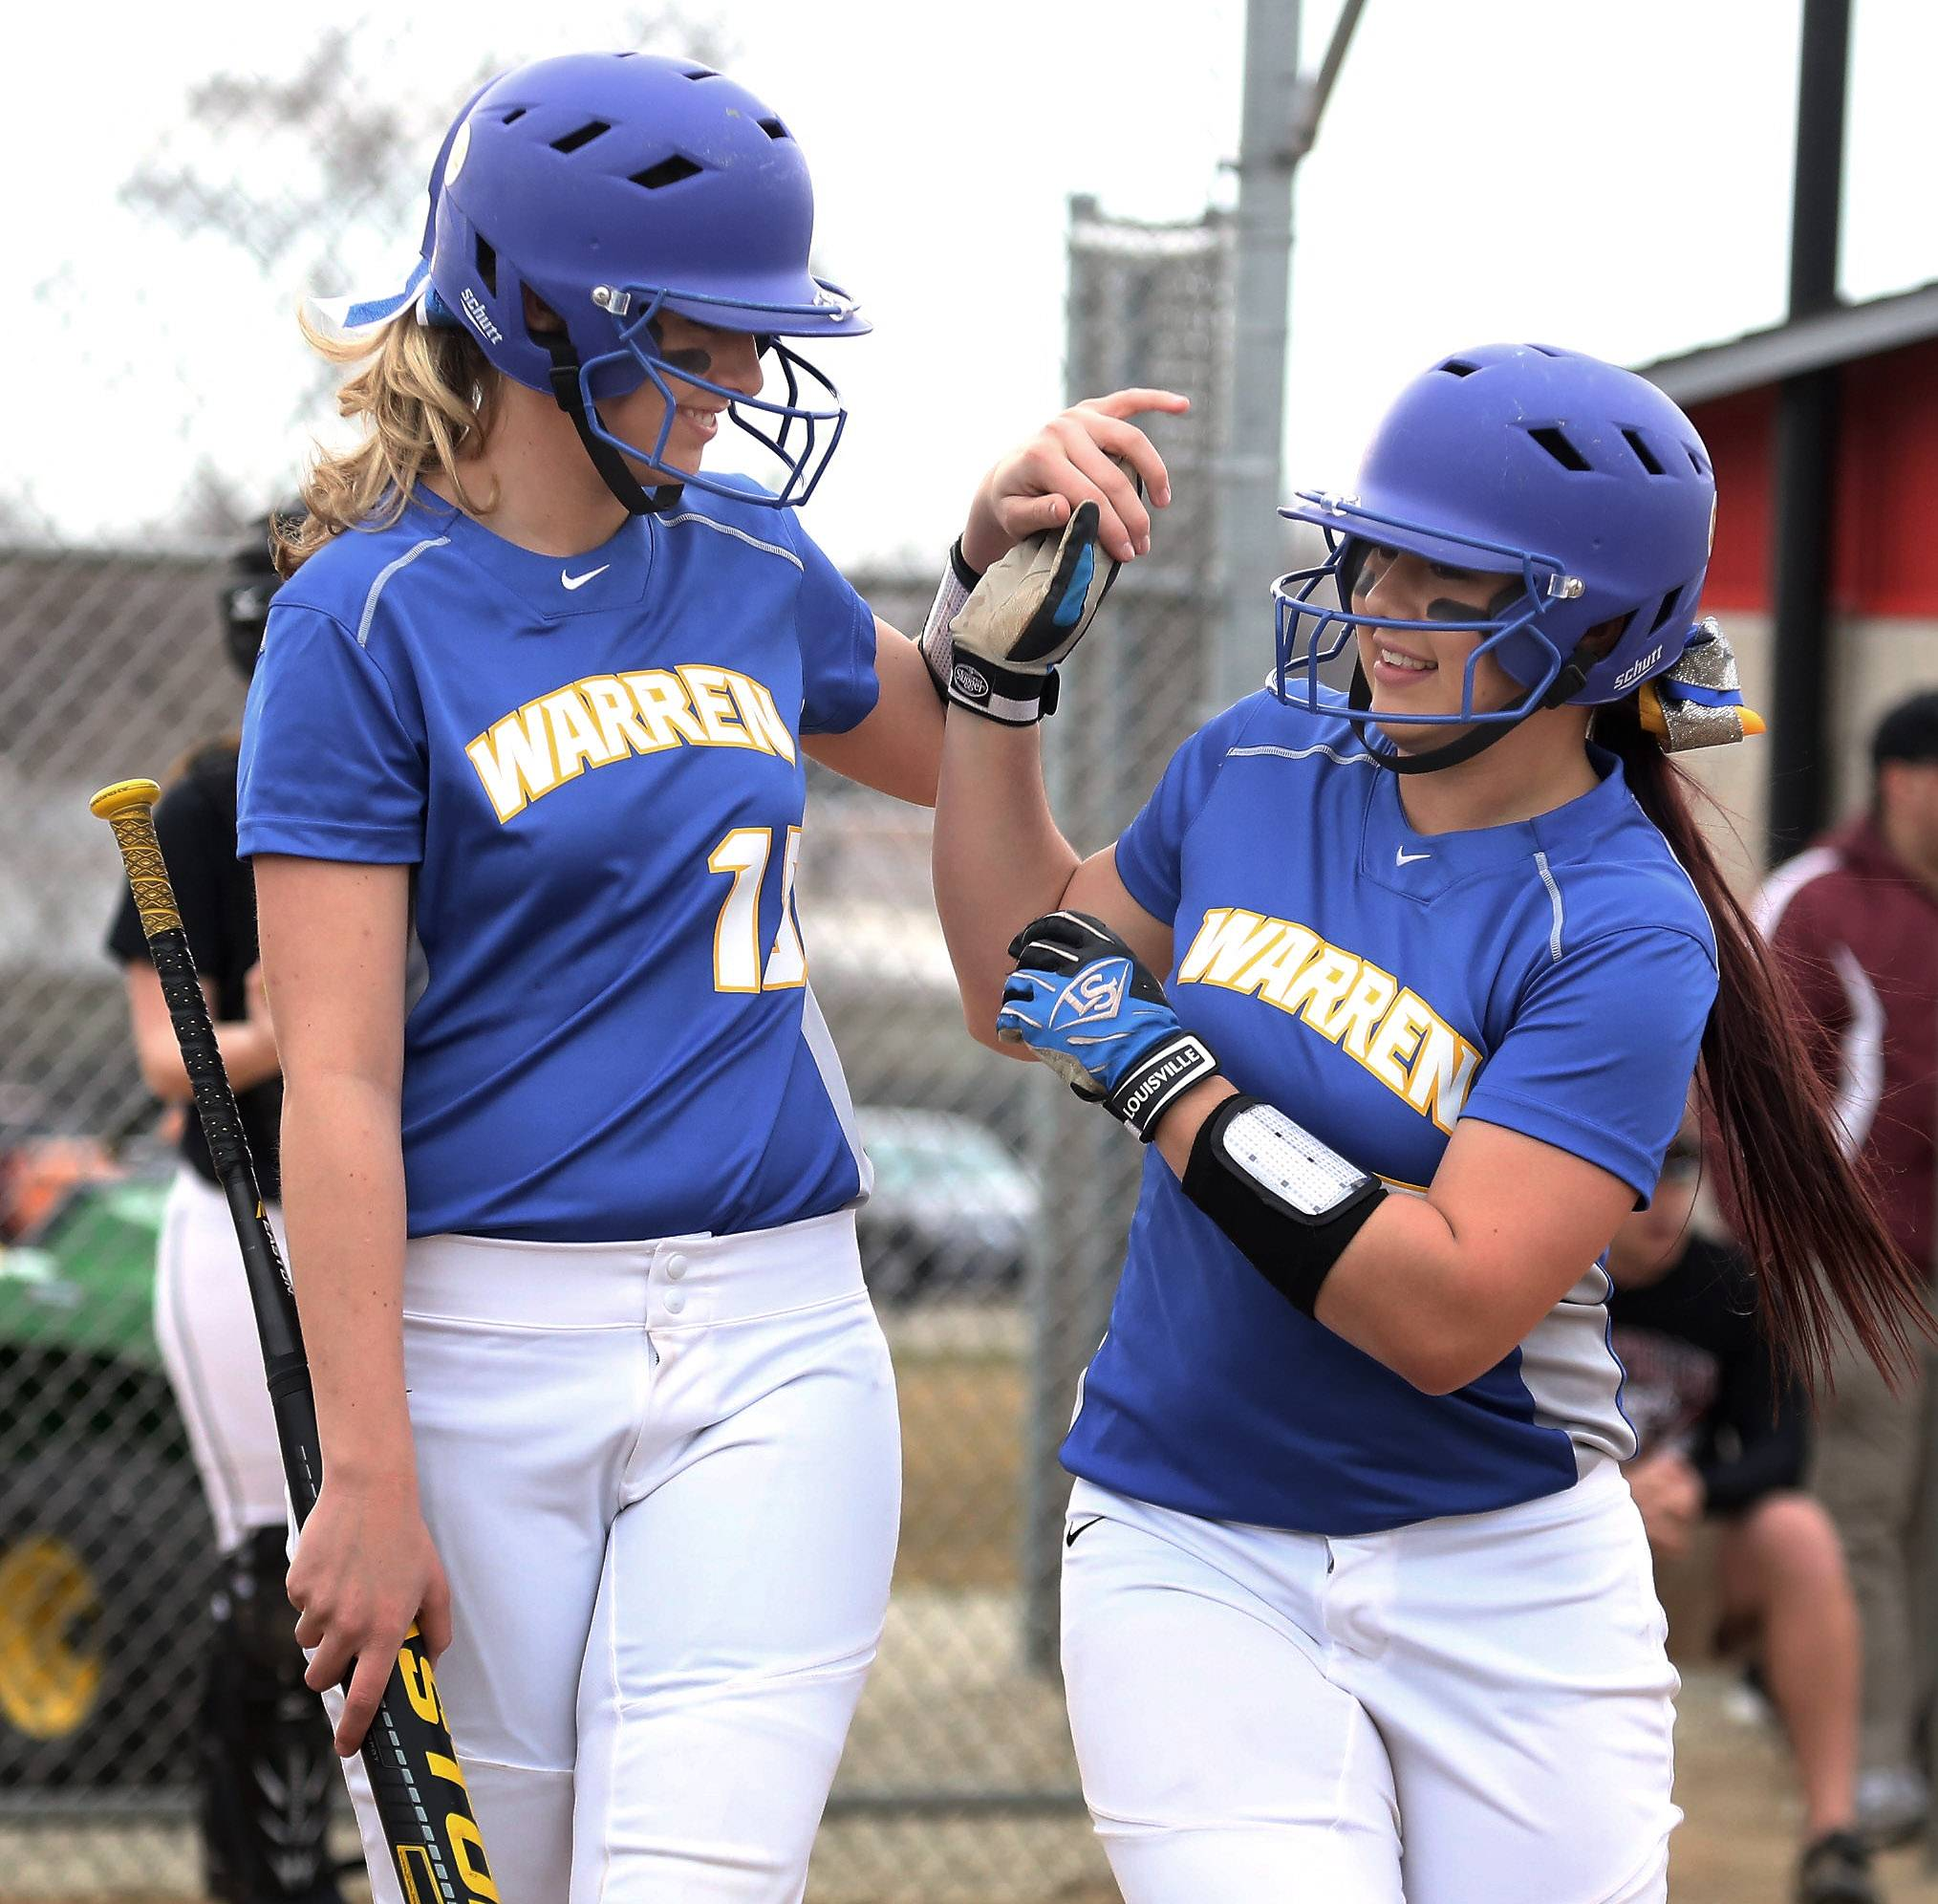 Warren's Jodie Hurd, left congratulates teammate Megan Scott after she hit a home run in the second inning against host Antioch on Thursday.